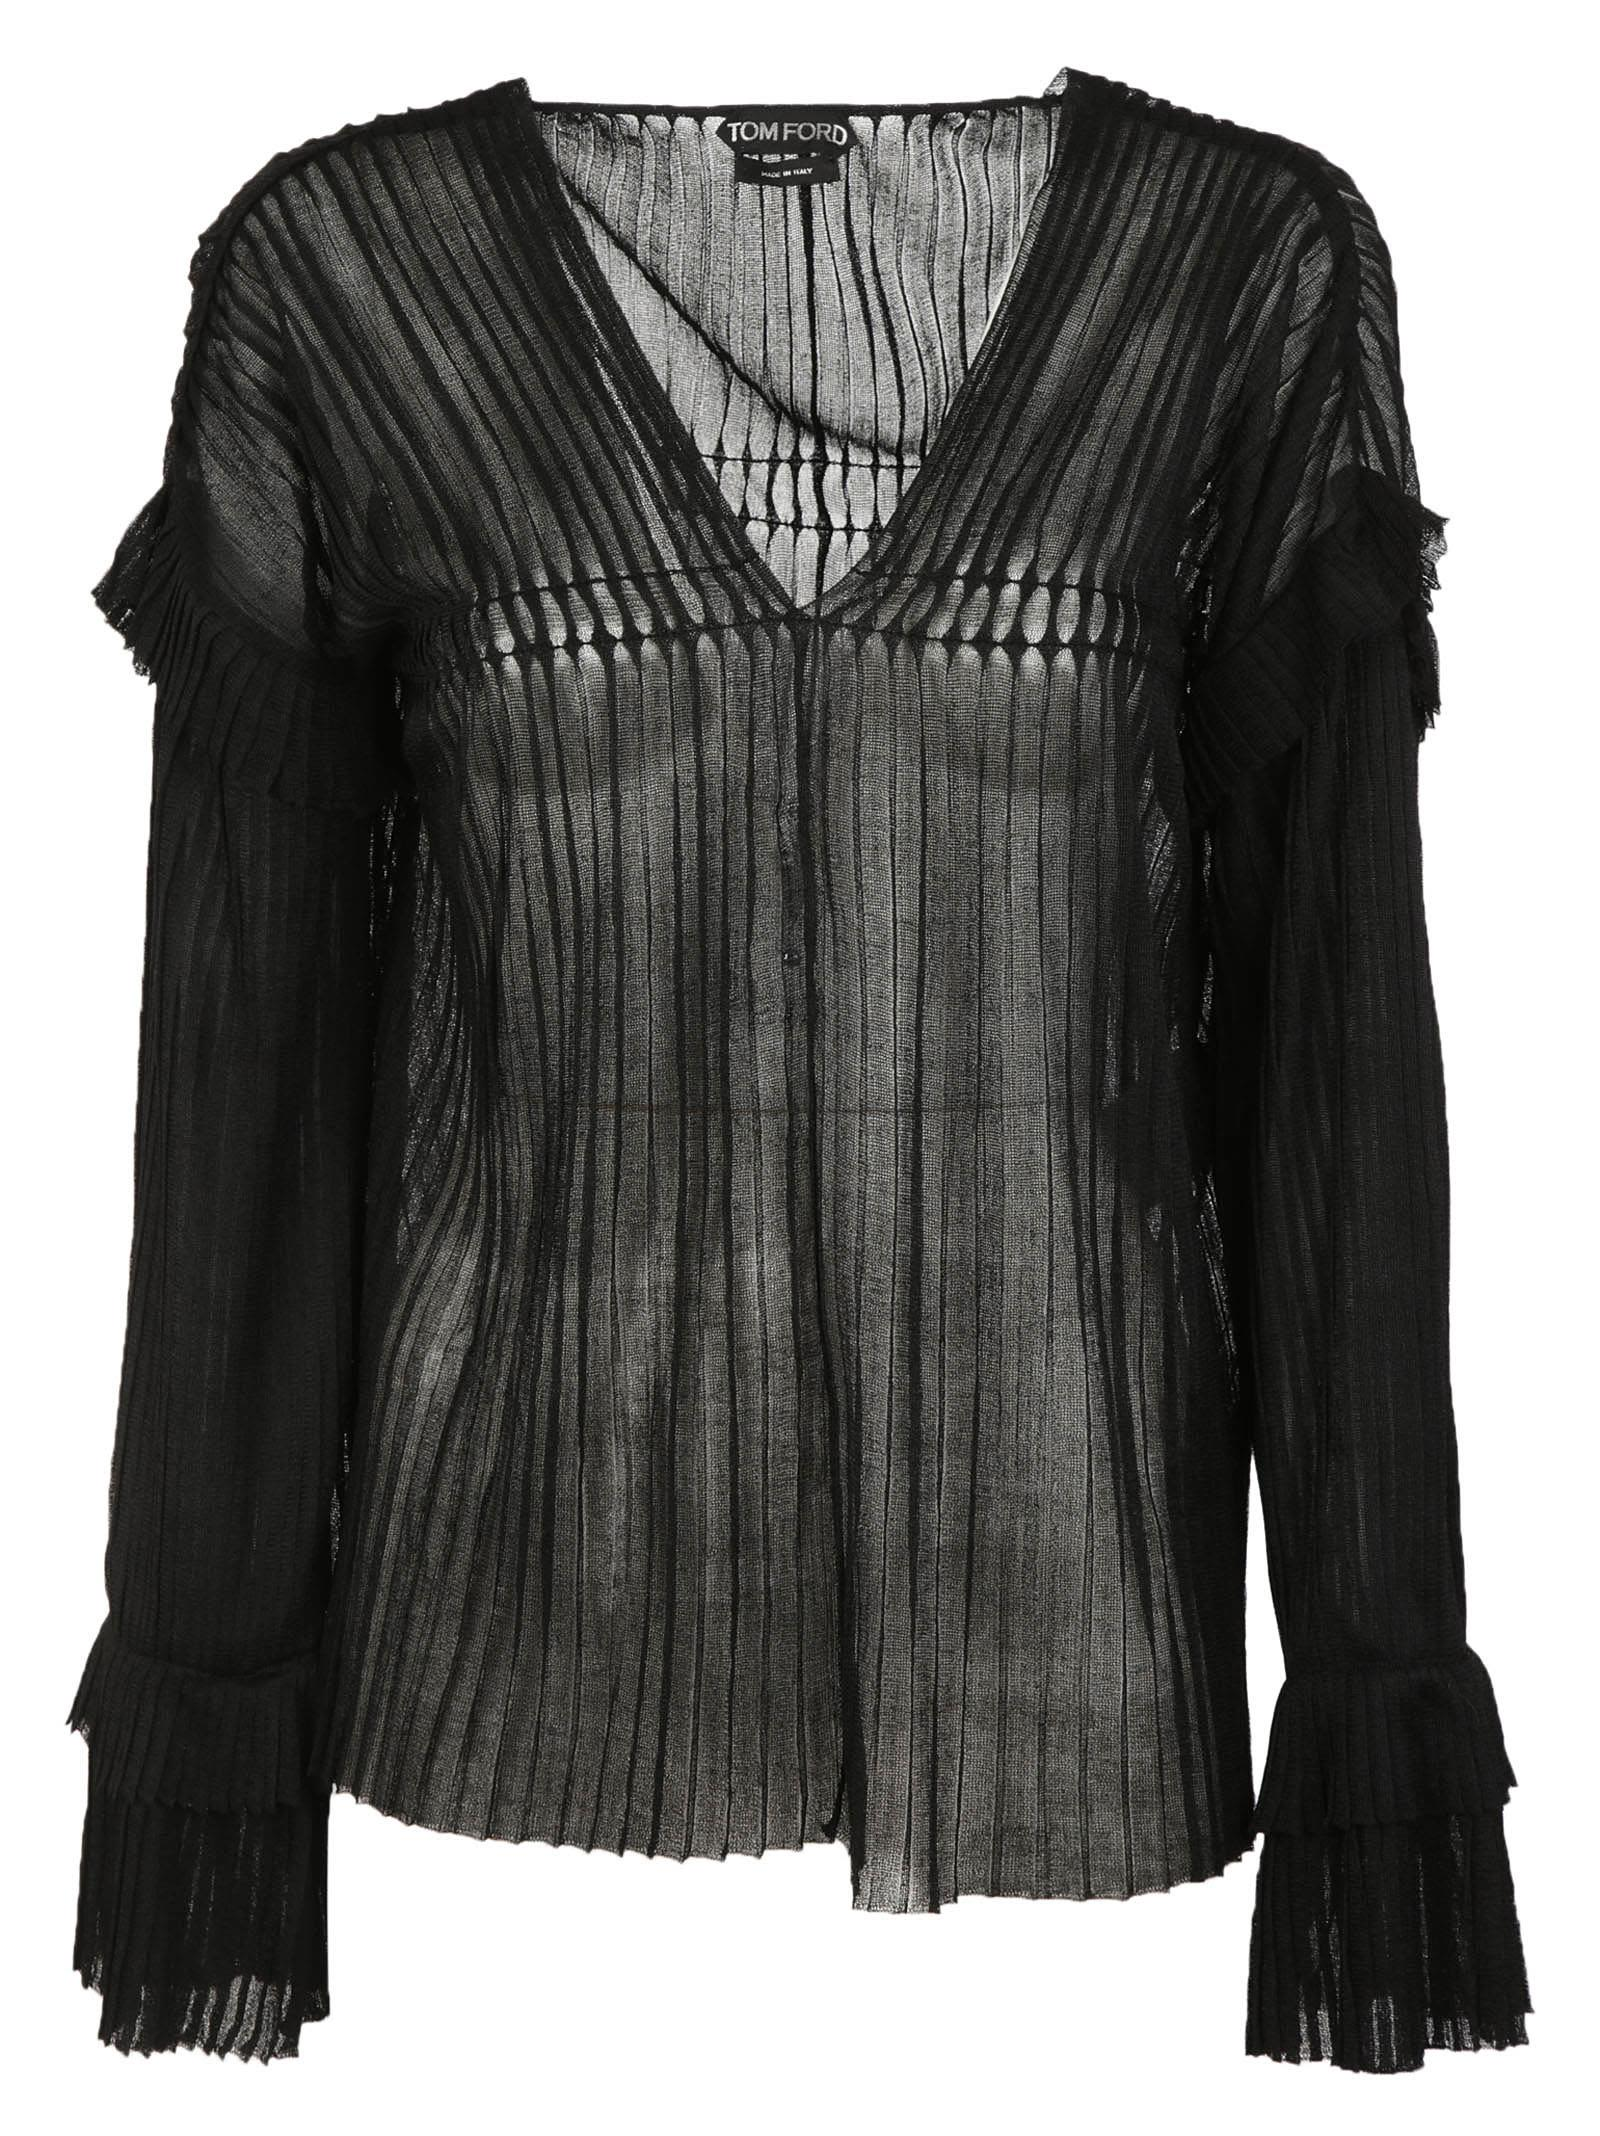 Tom Ford Ruffle Cuffs Cardigan